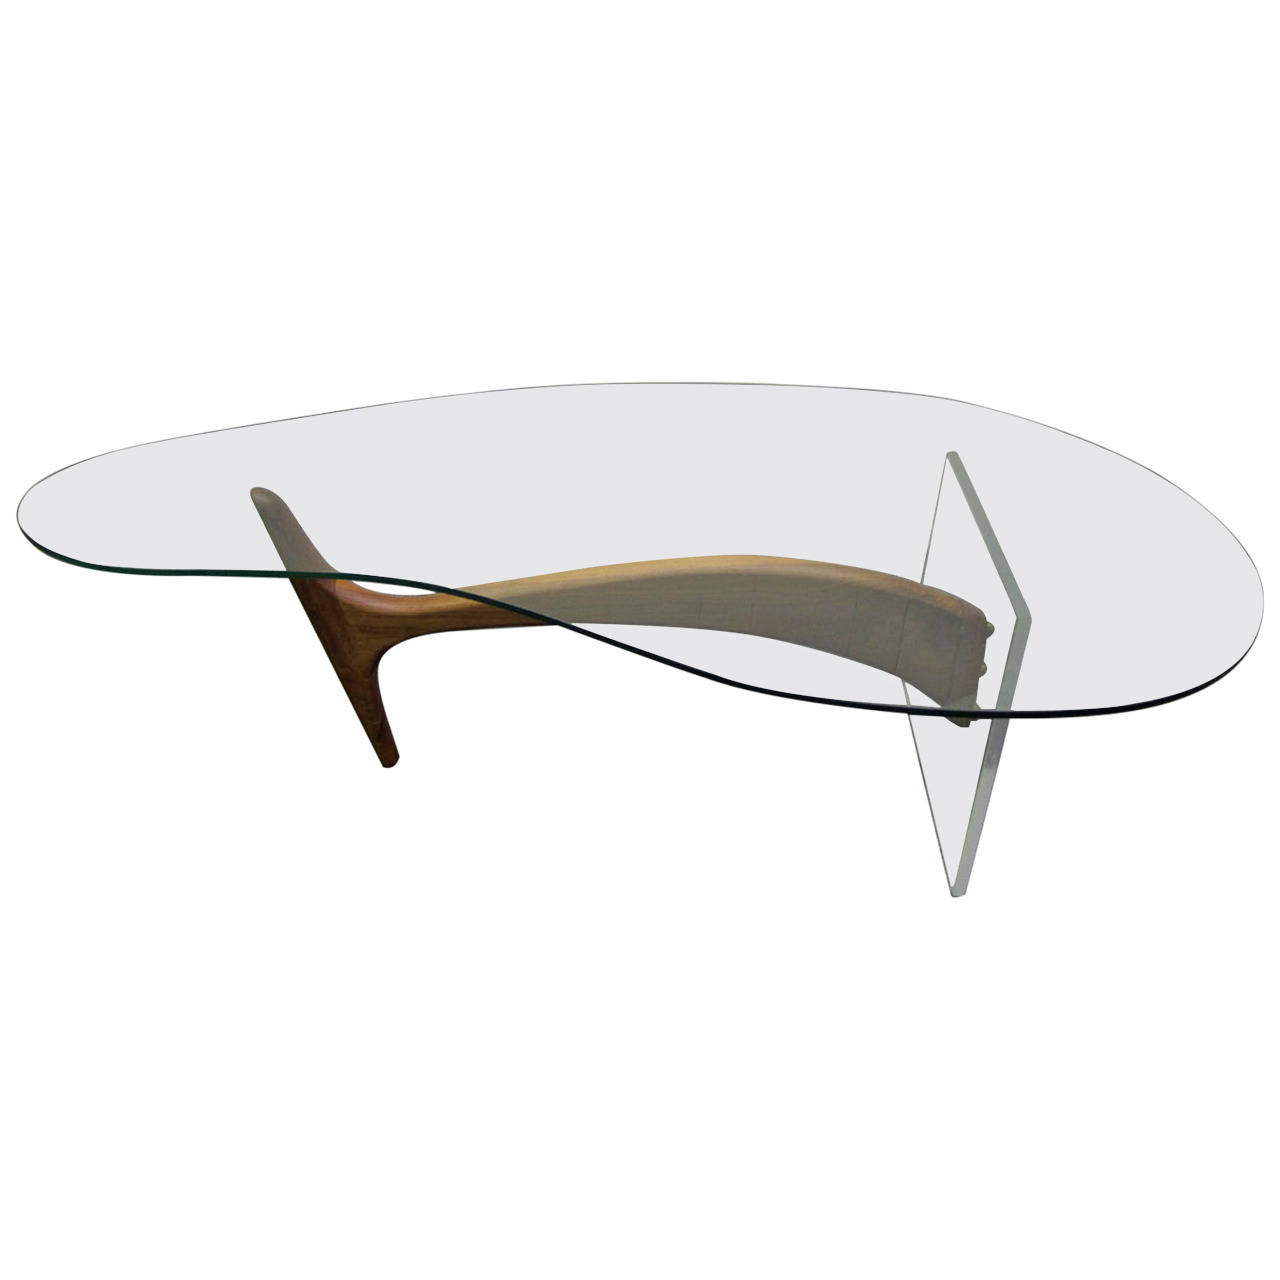 Biomorphic Coffee Table A Kagan State Of Mind La Croisette